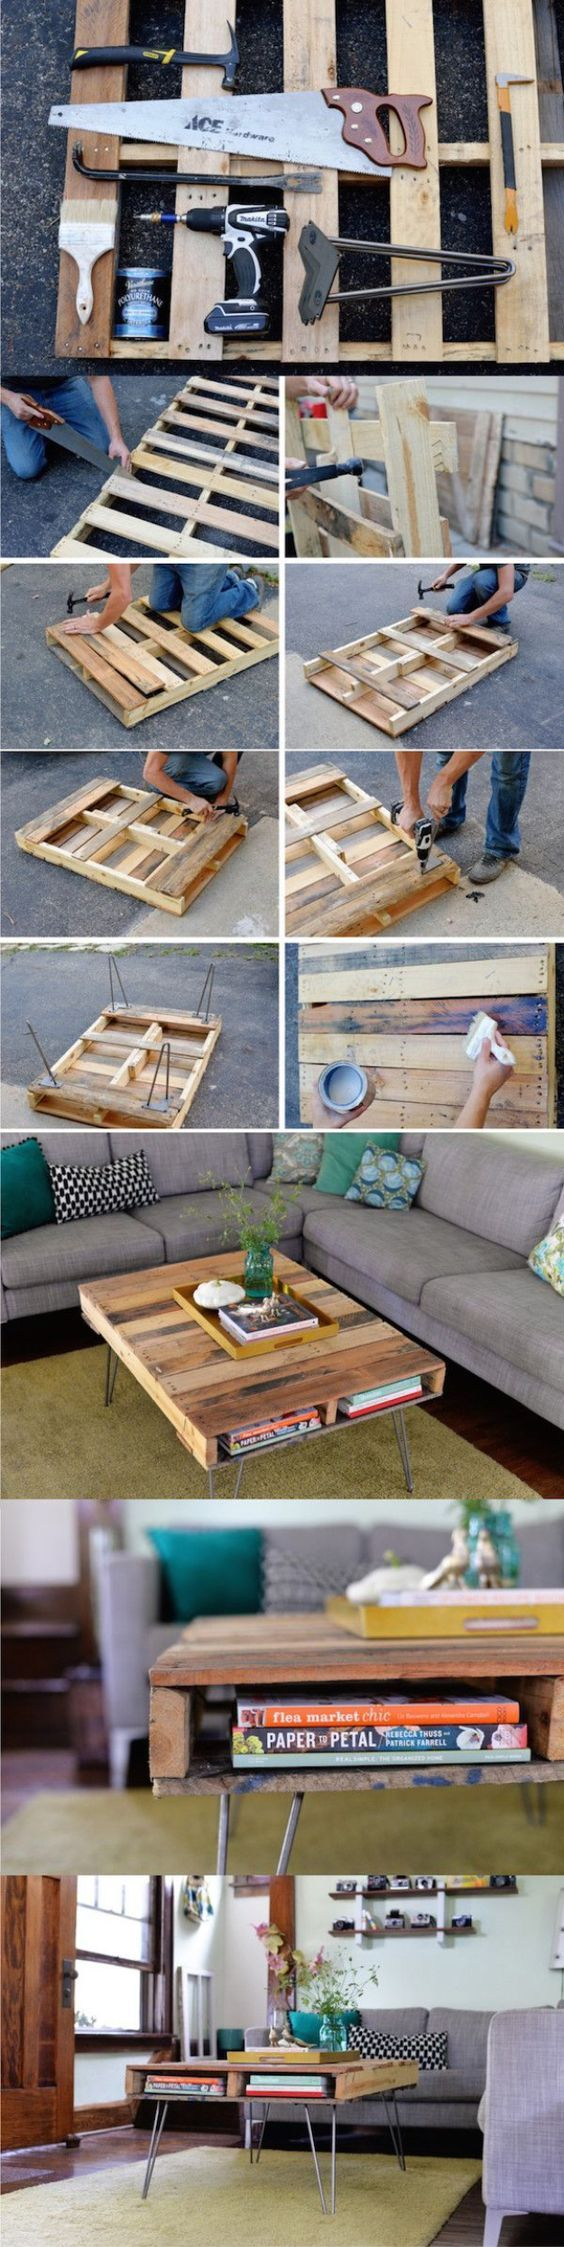 16 DIY Coffee Table Projects. Best 25  Homemade furniture ideas on Pinterest   Homemade spare